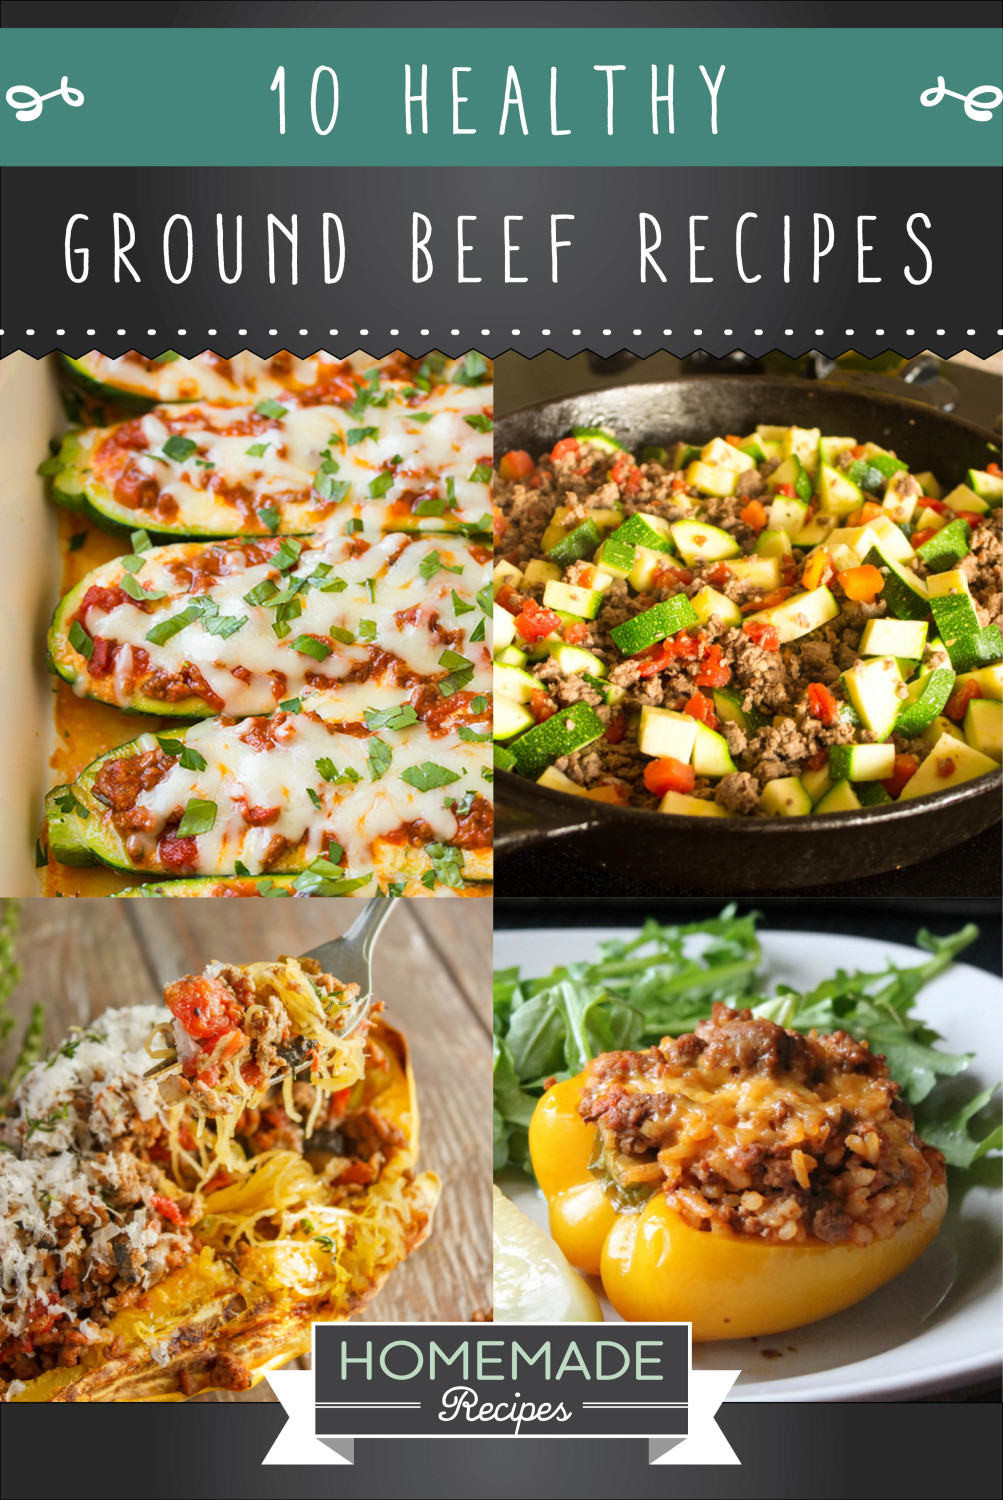 Healthy Ground Veal Recipes  10 Healthy Ground Beef Recipes